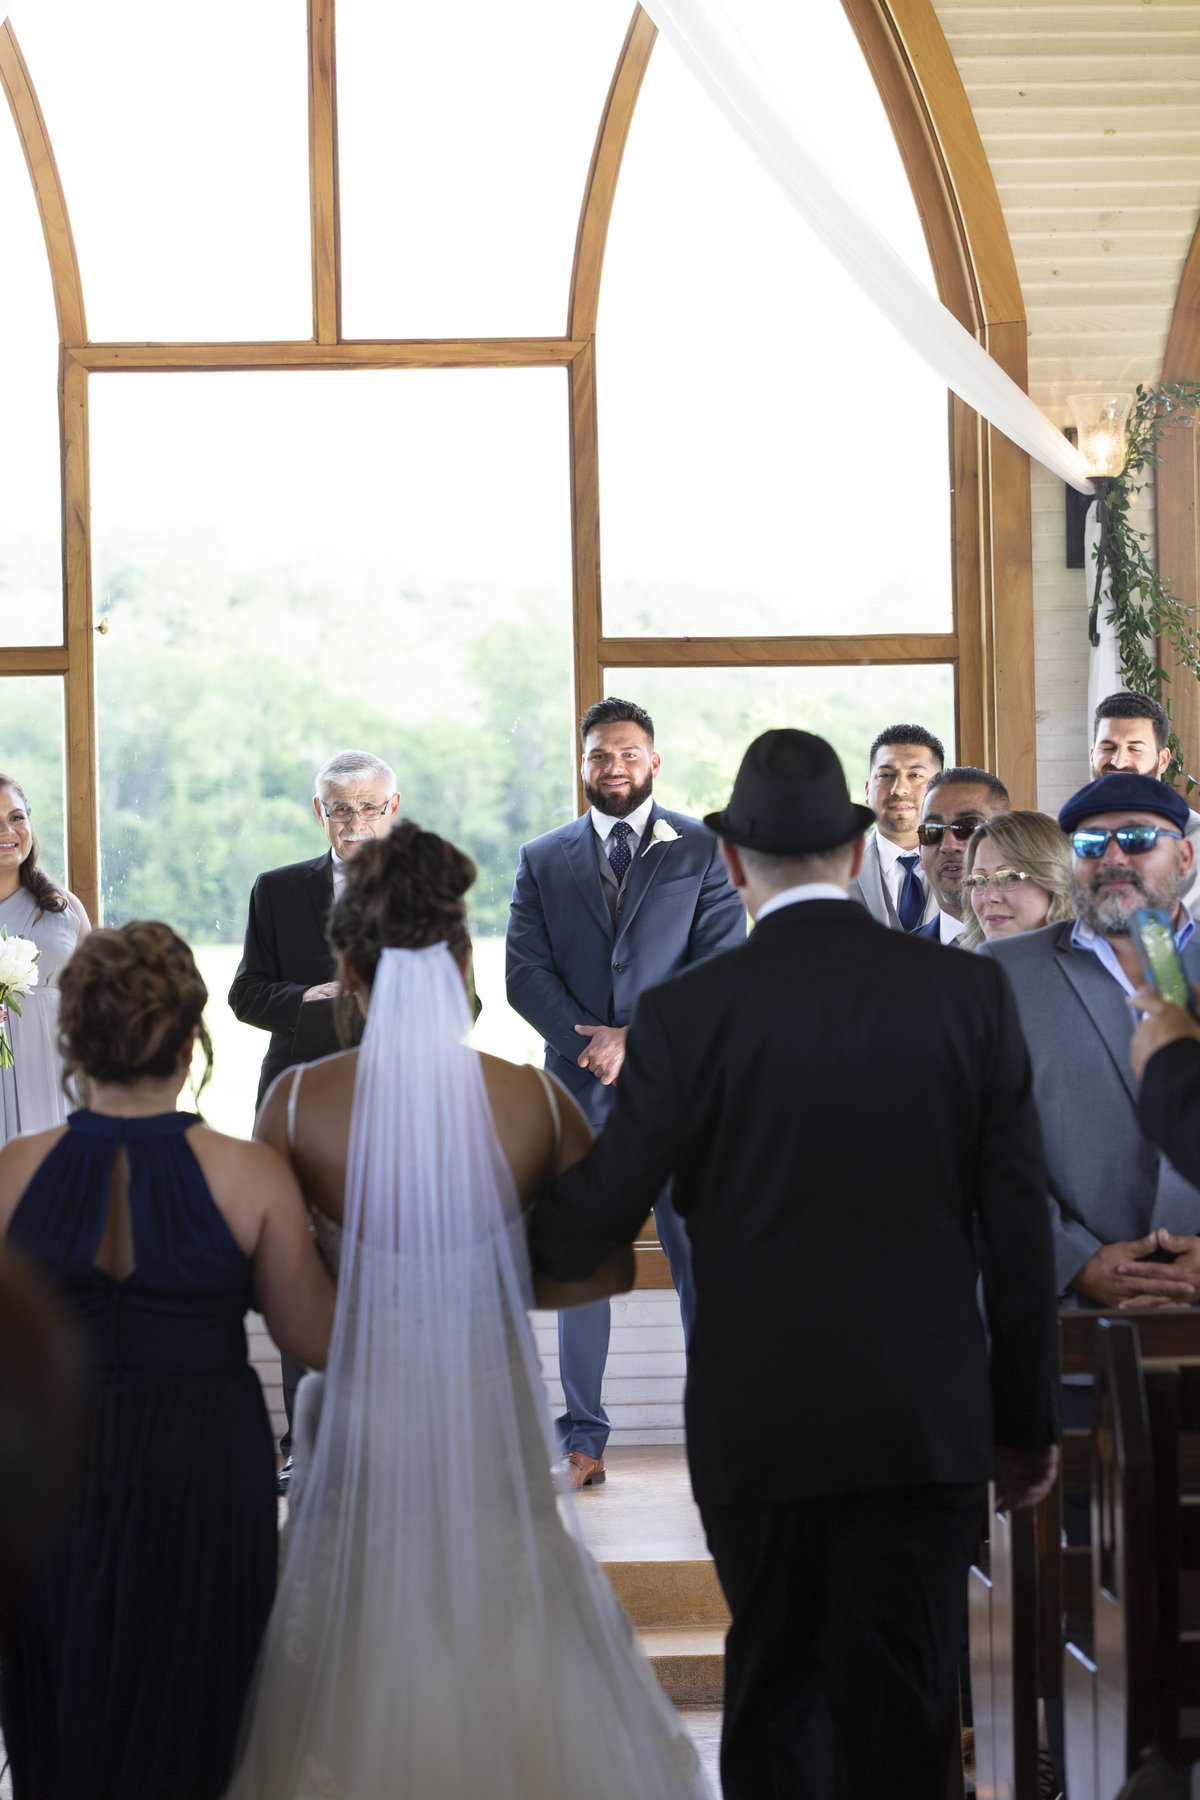 RMPhotography_PenaWedding_May4th2019_Ceremony-24